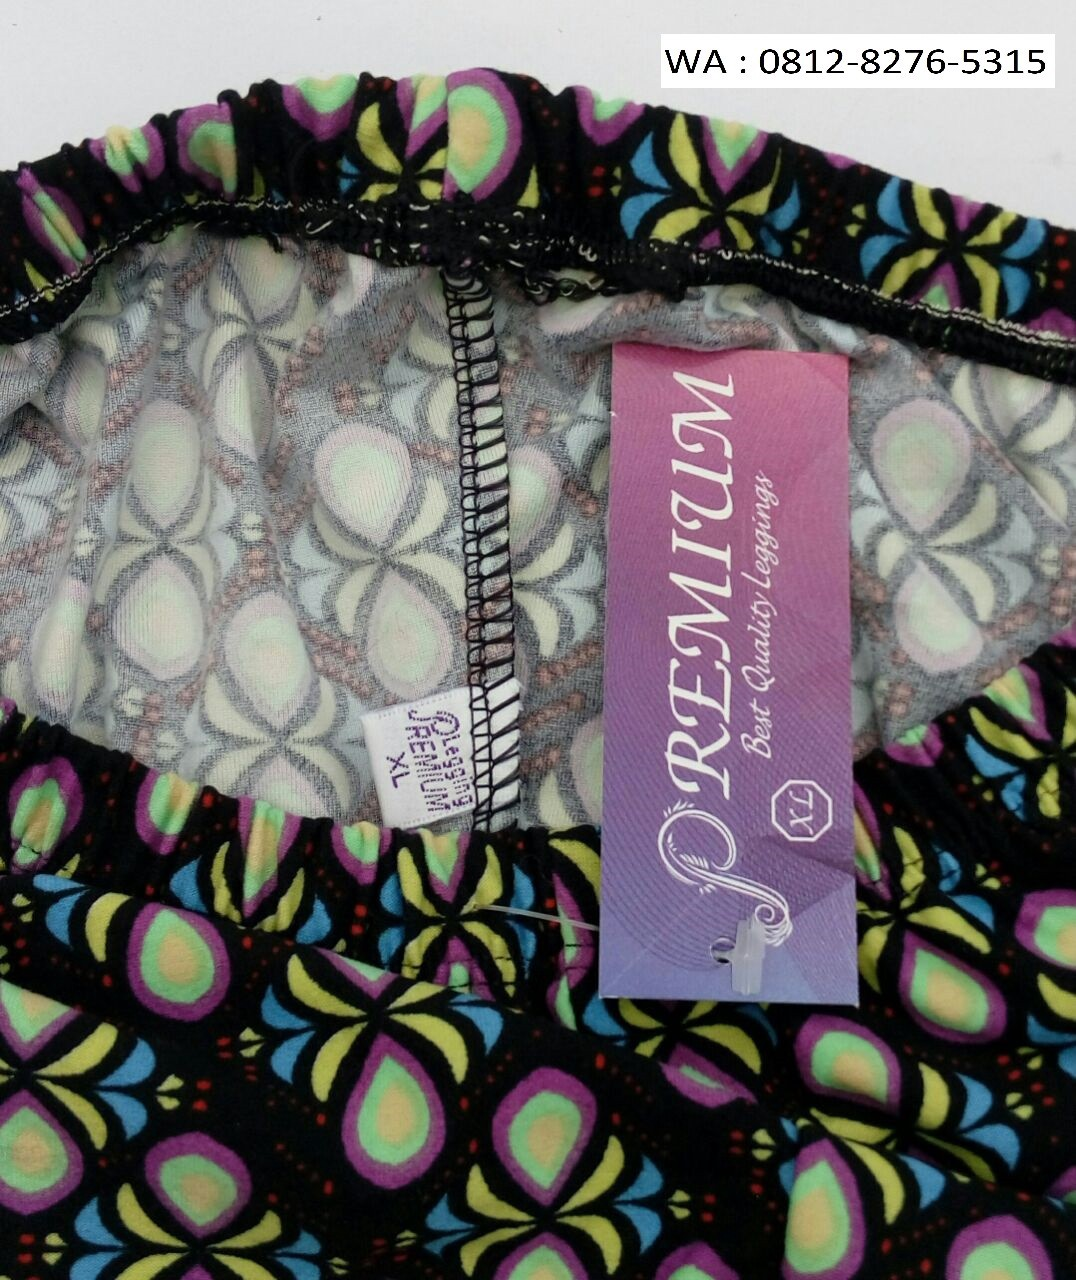 Discount Wa 0812 8276 5315 Legging Anak 4 Tahun By Legging Grosir2 Medium